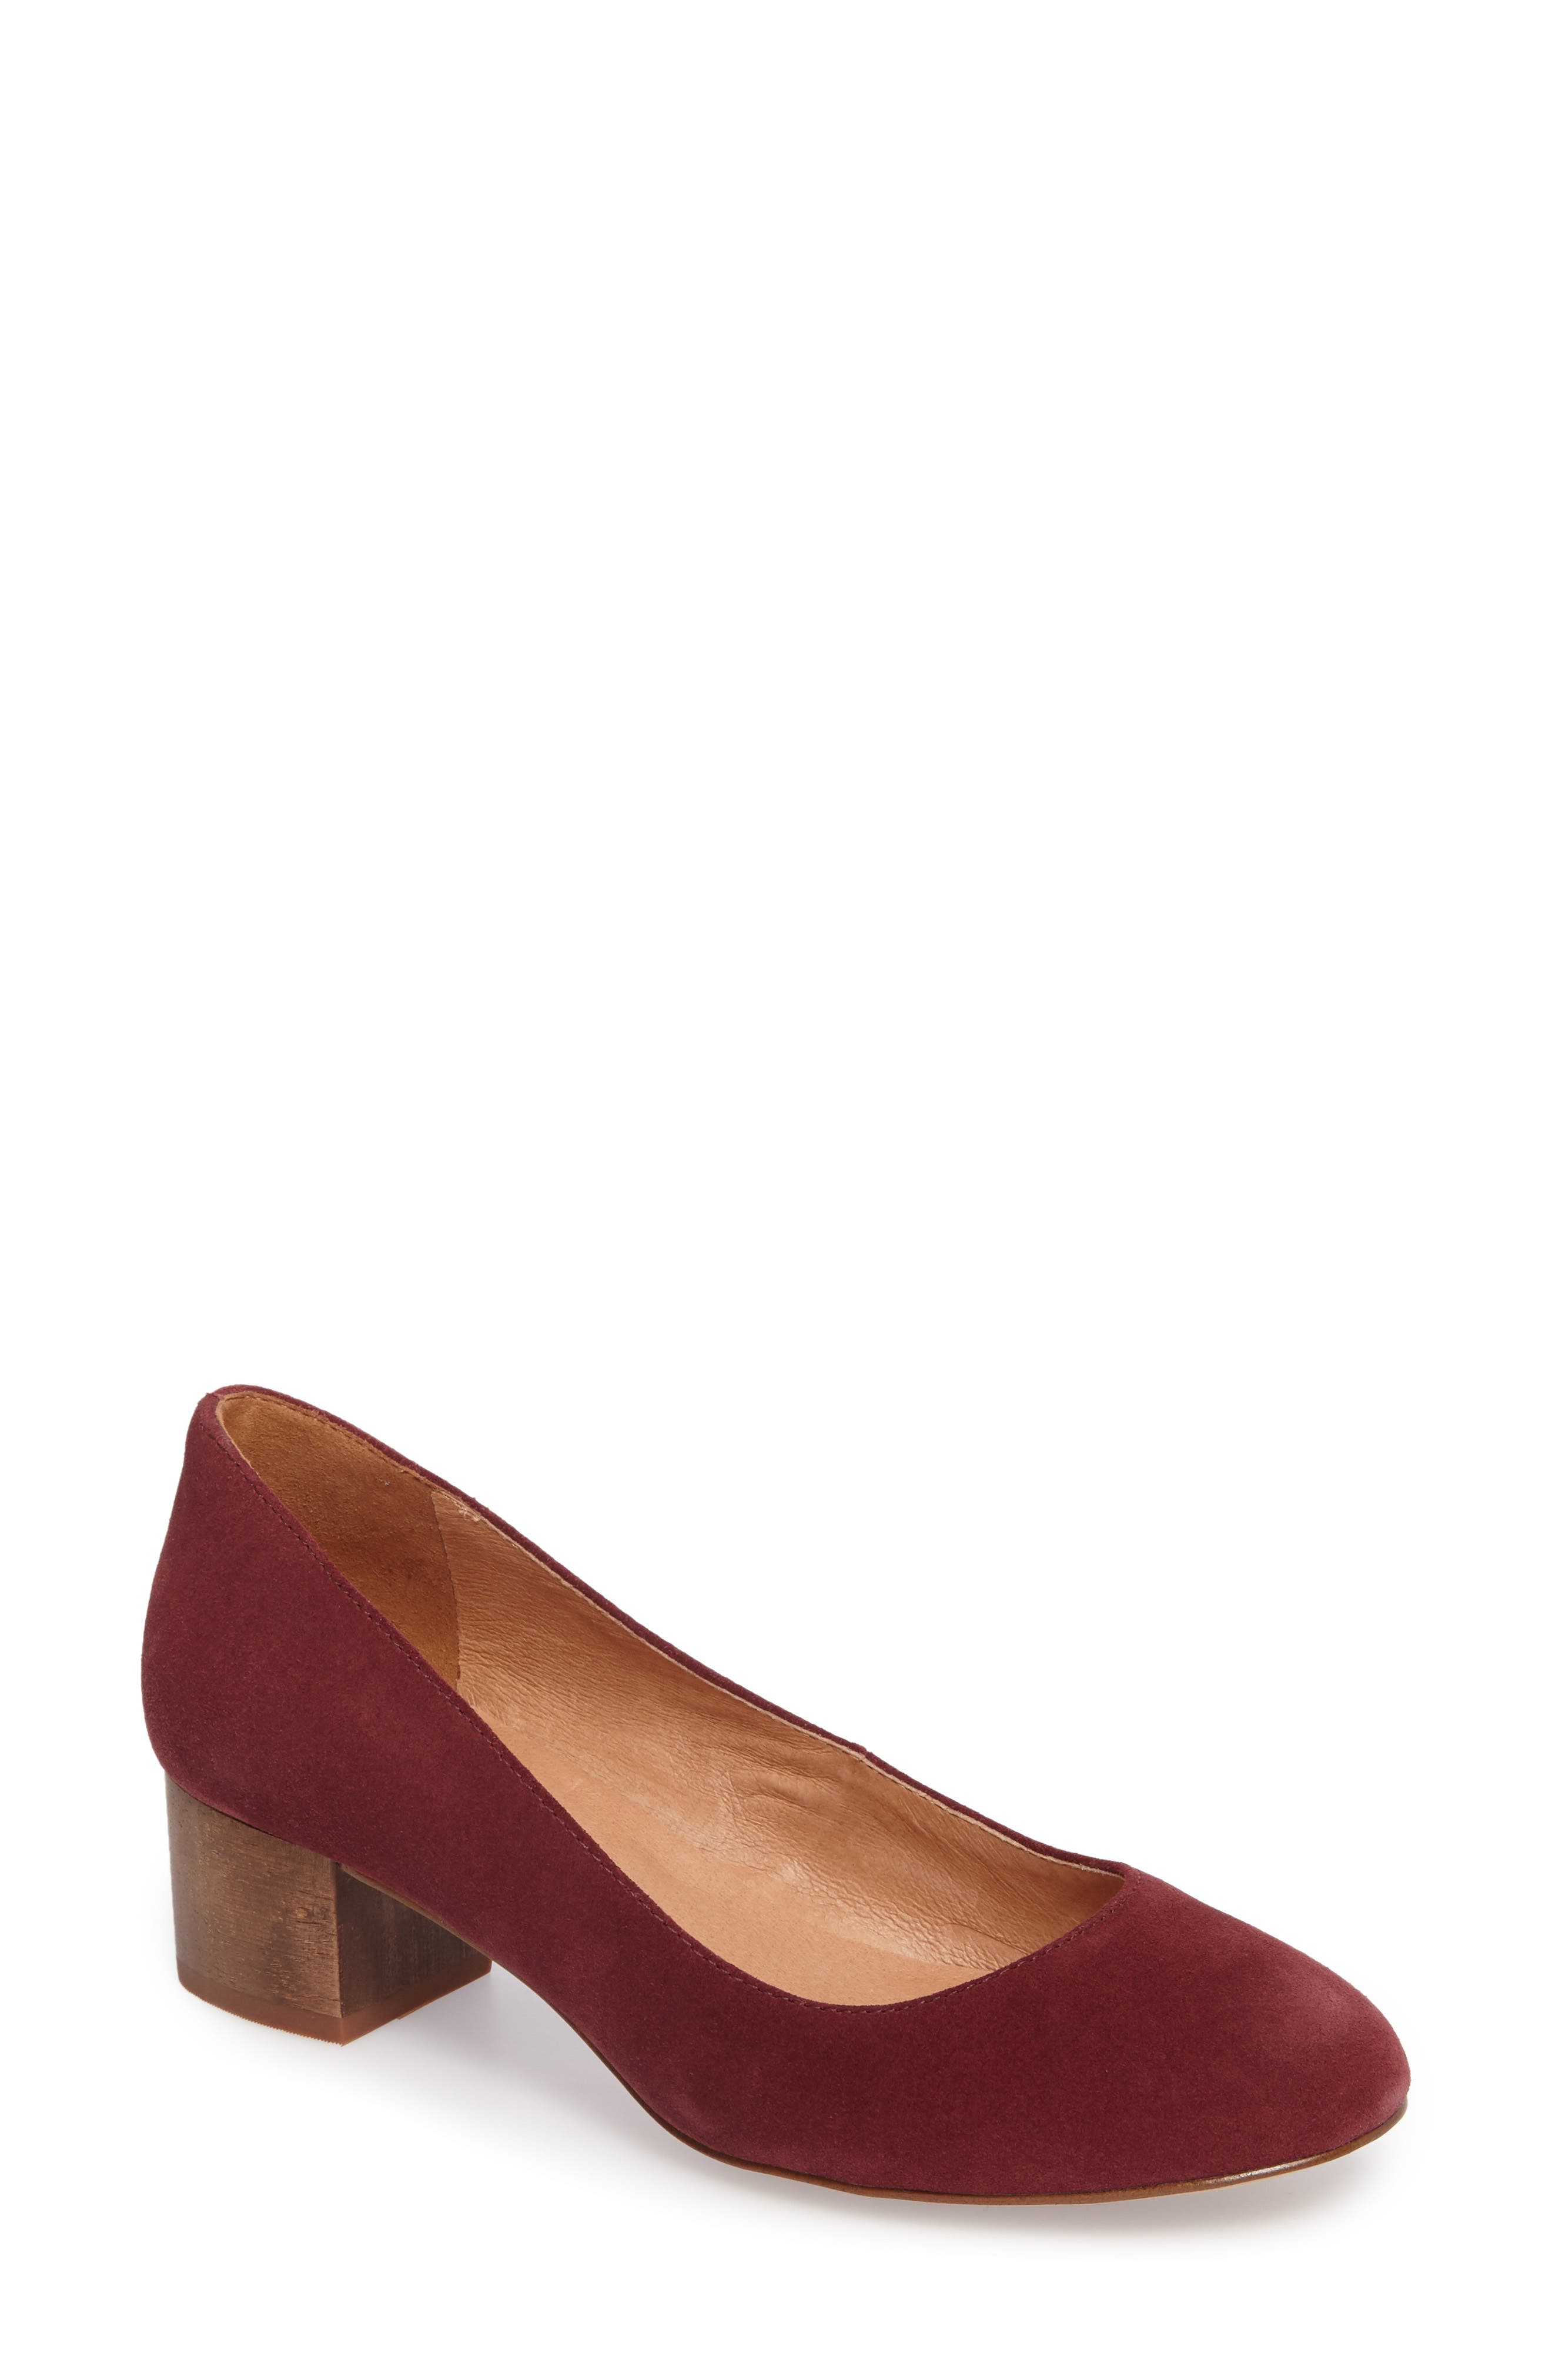 Alternate Image 1 Selected - Madewell Ella Pump (Women)